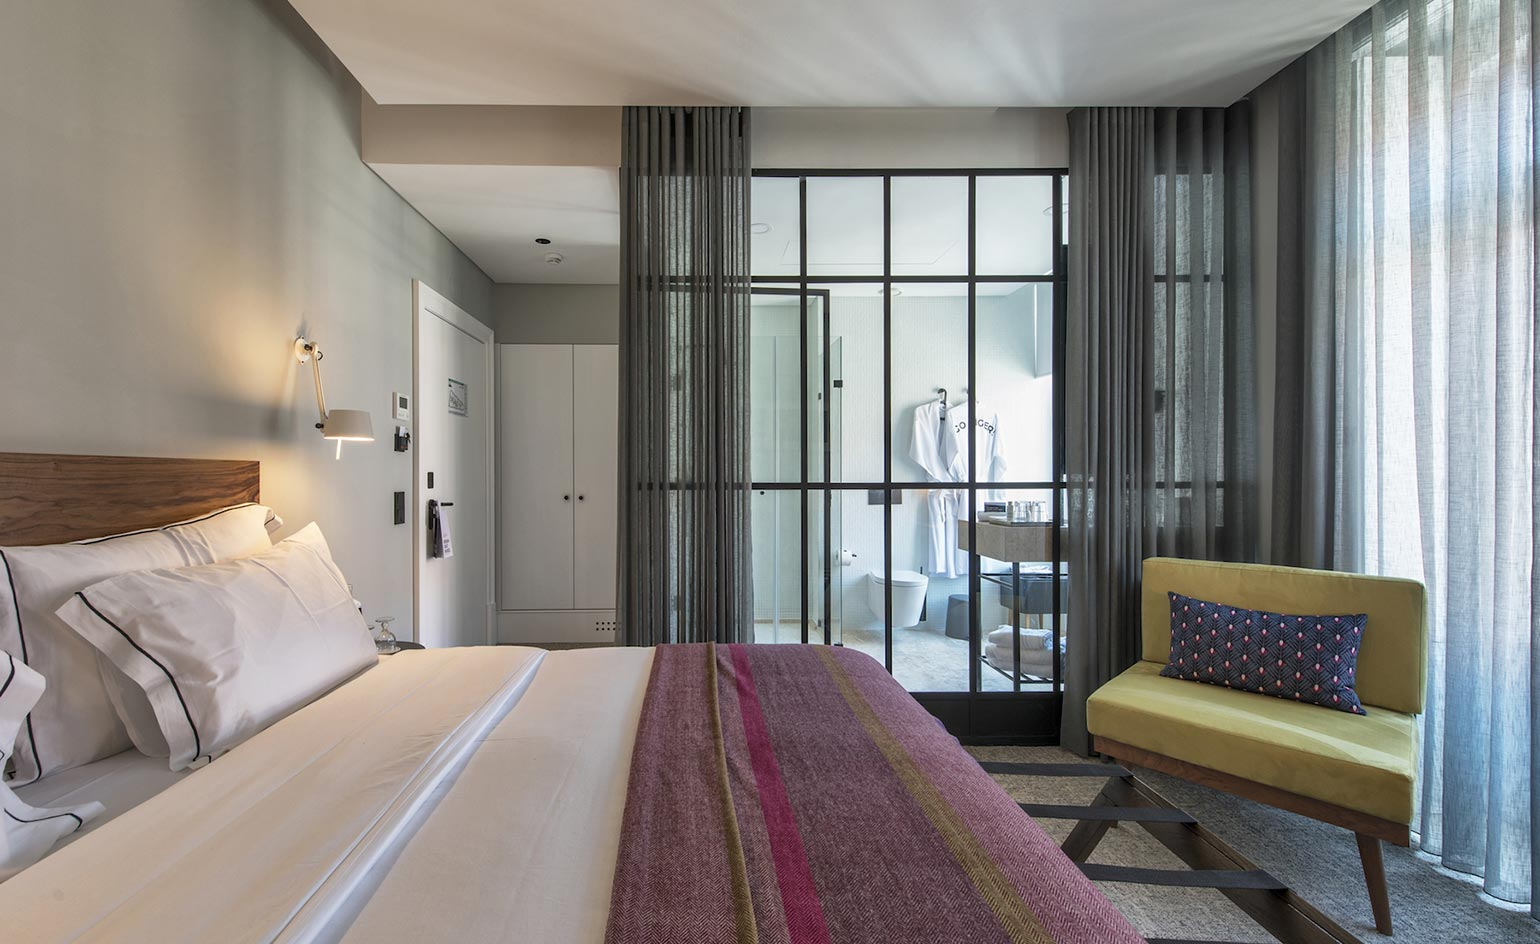 1908 hotel review lisbon portugal wallpaper for Design boutique hotel lisbon